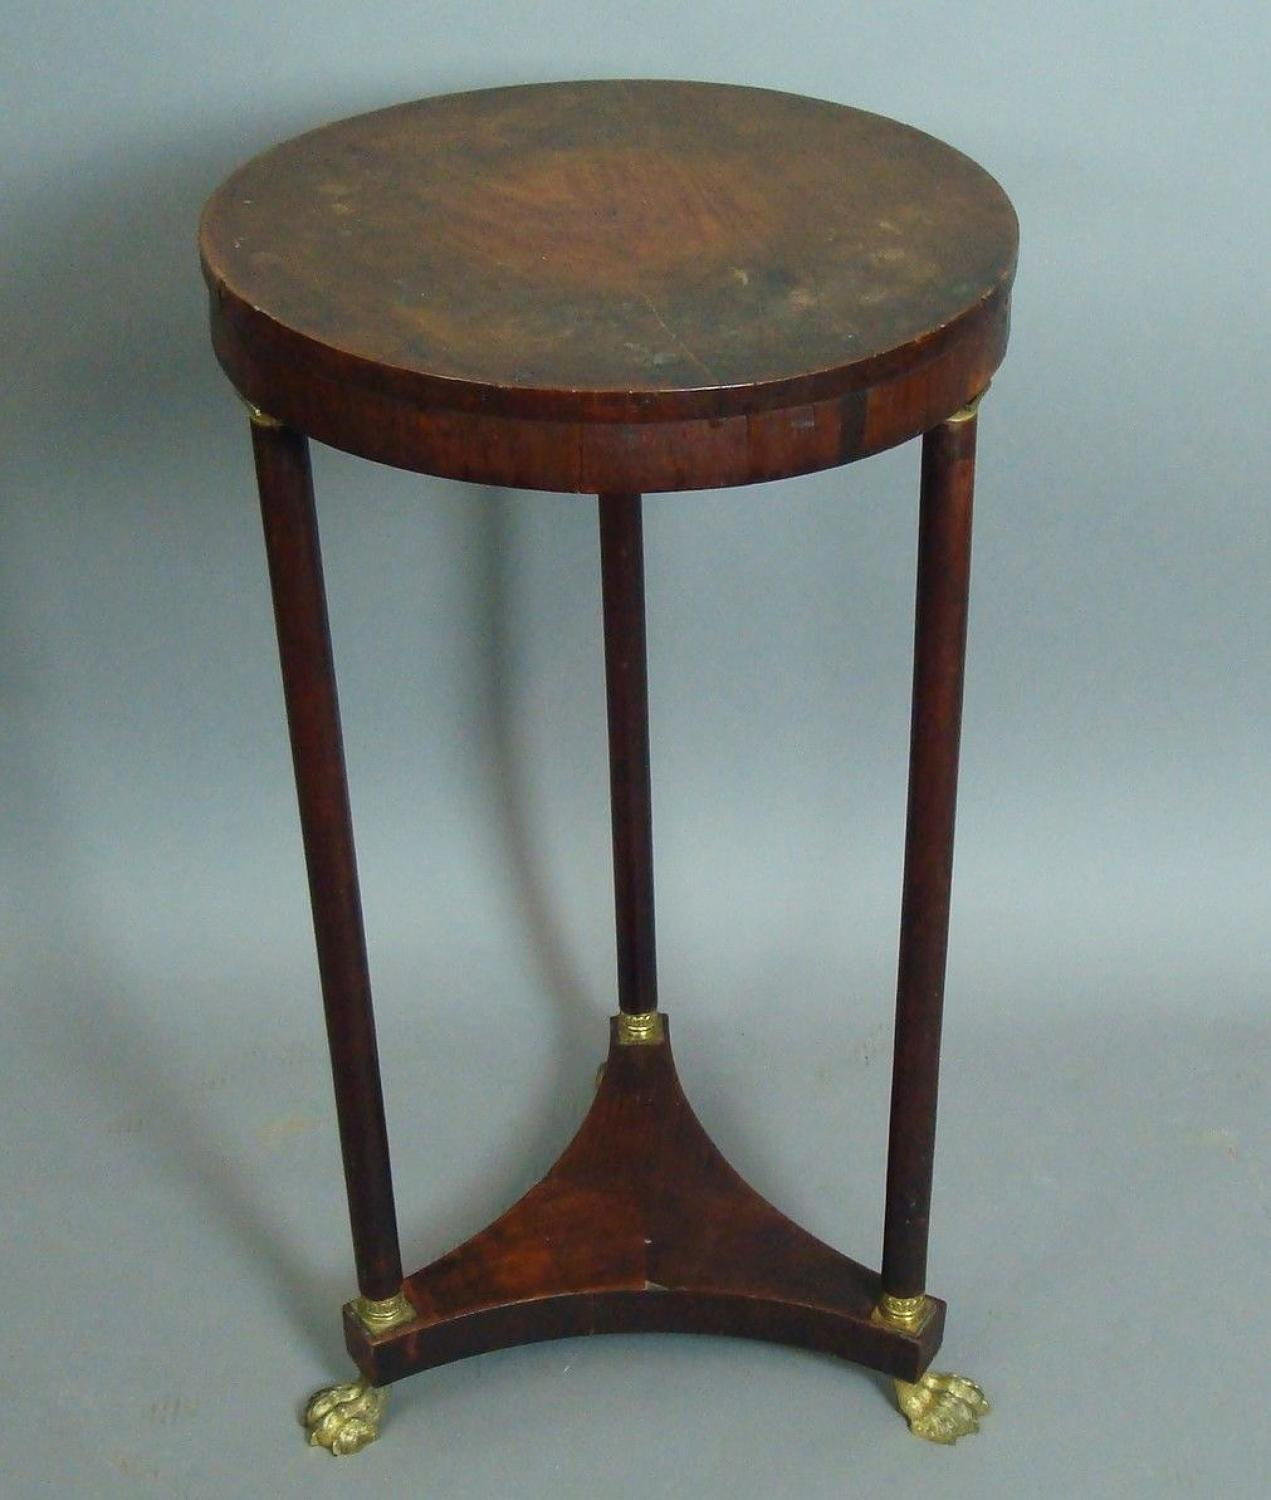 Regency circular occasional table